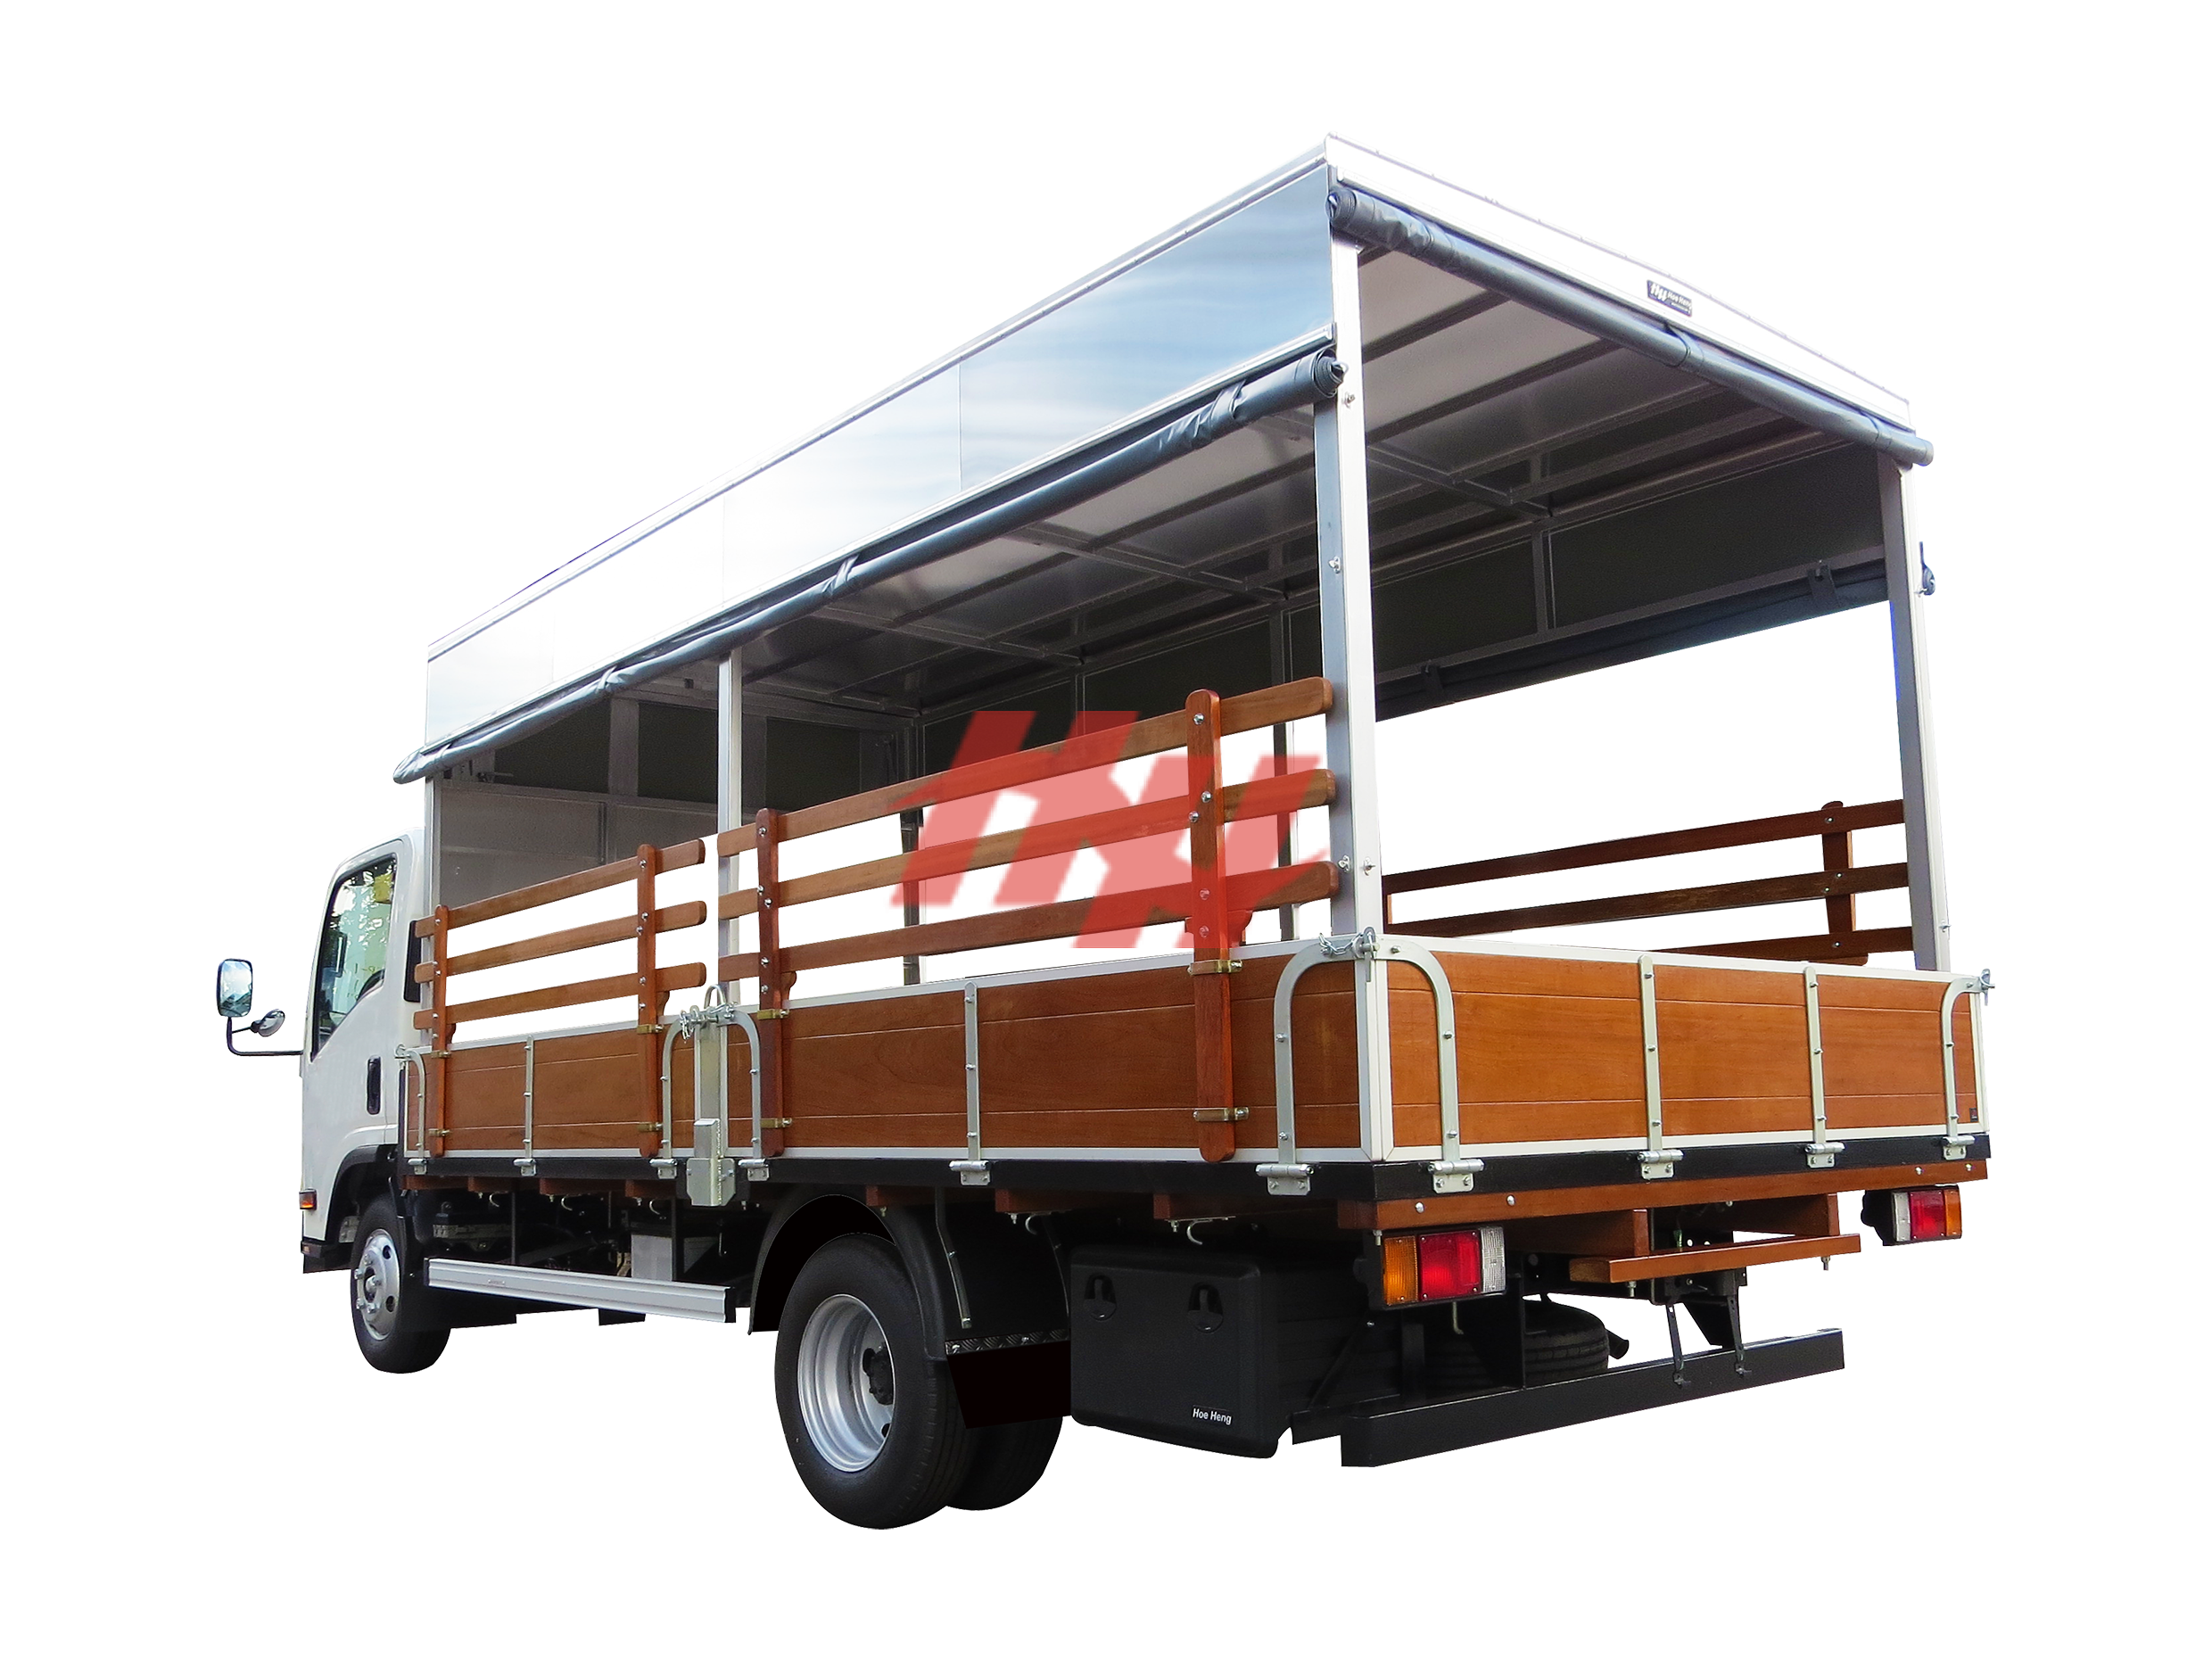 High roof full length canopy on wooden body with roll down side canvas  wooden railing  galvanished hinges and side guard